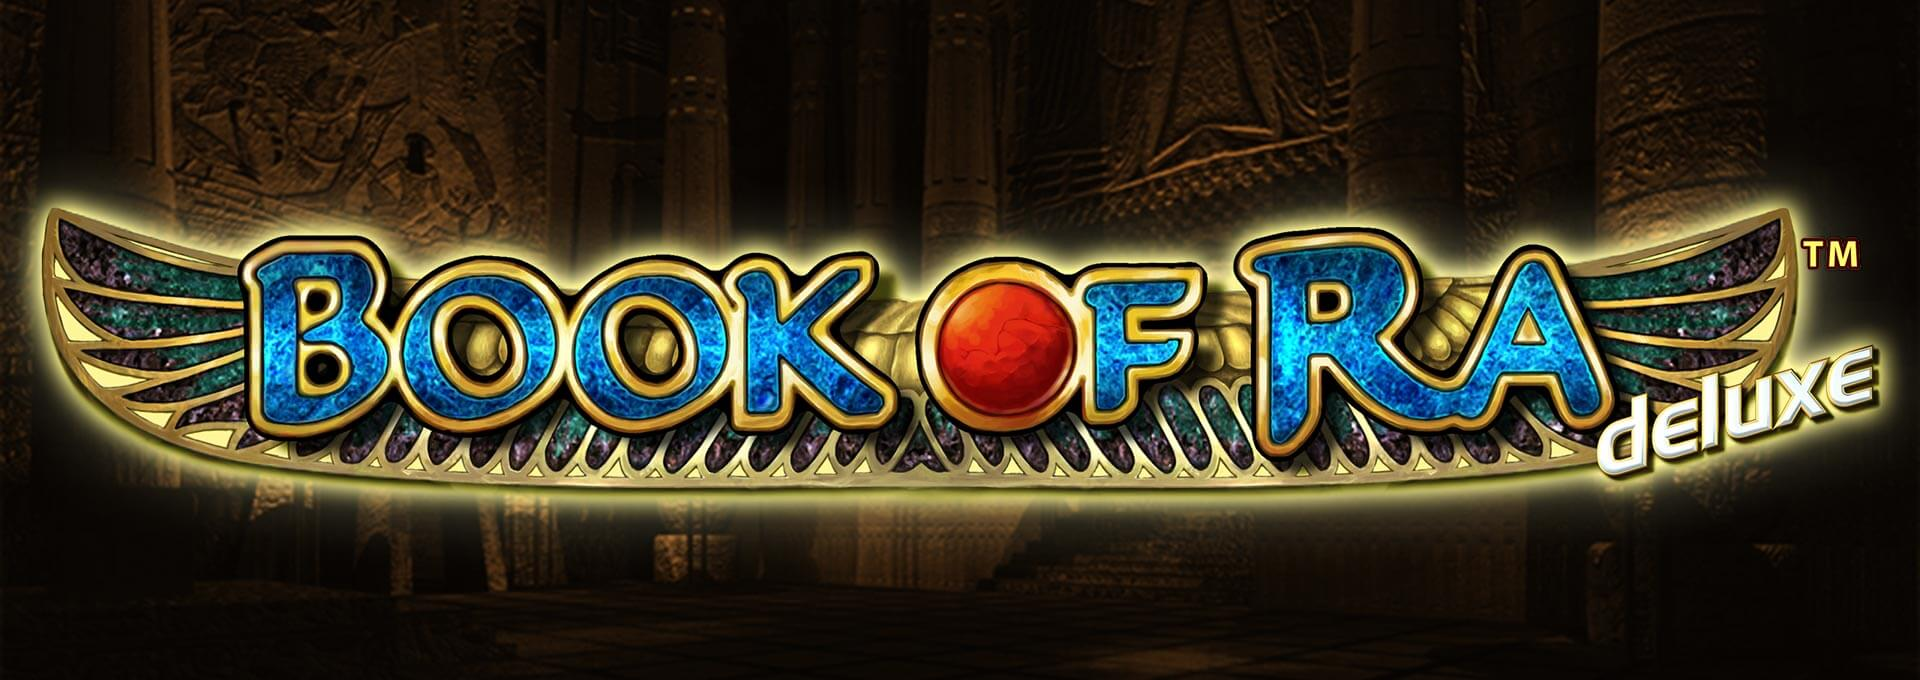 online casino websites book of ra deluxe demo